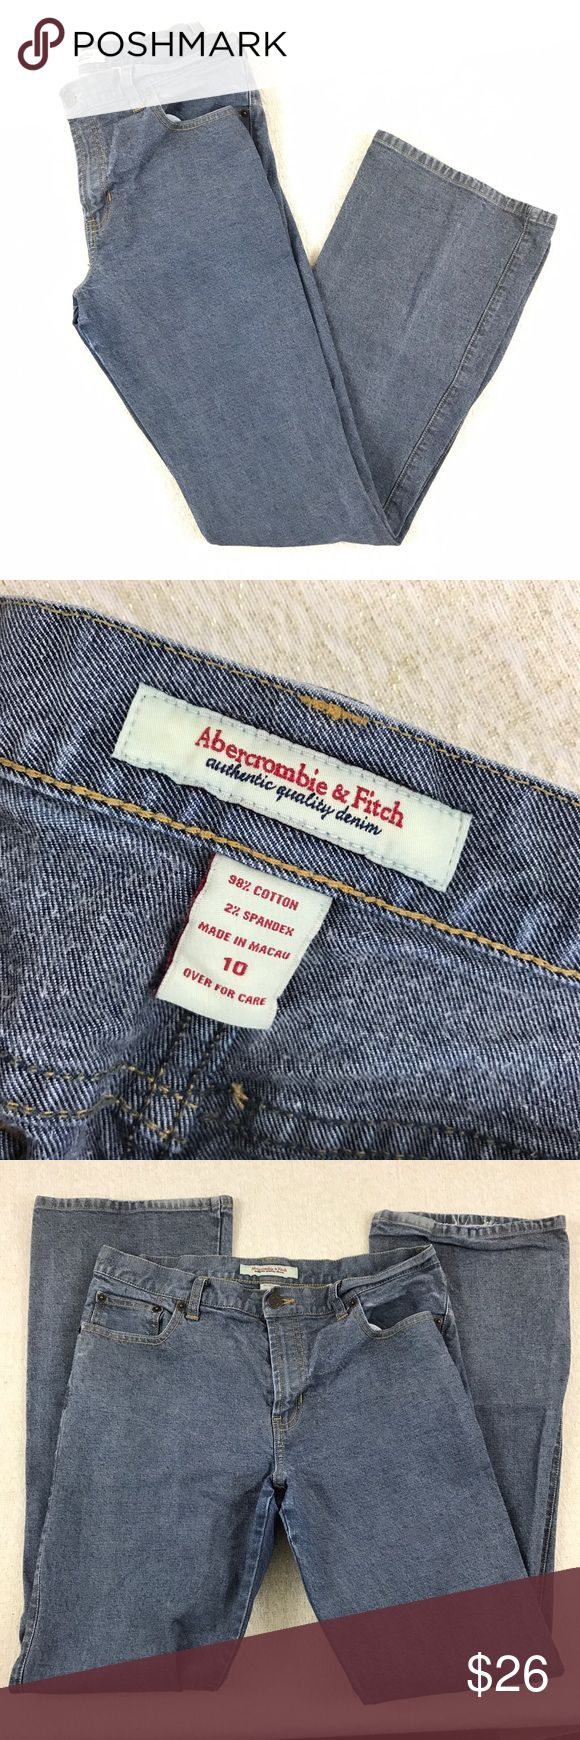 Abercrombie and Fitch boot cut retro jeans Overall excellent condition light where on hems. 98% cotton 2% spandex. Size 10.Flat and unstretched approximate measurements are waist 15 inches rise 9 1/2 inches inseam 31 inches Abercrombie & Fitch Jeans Boot Cut